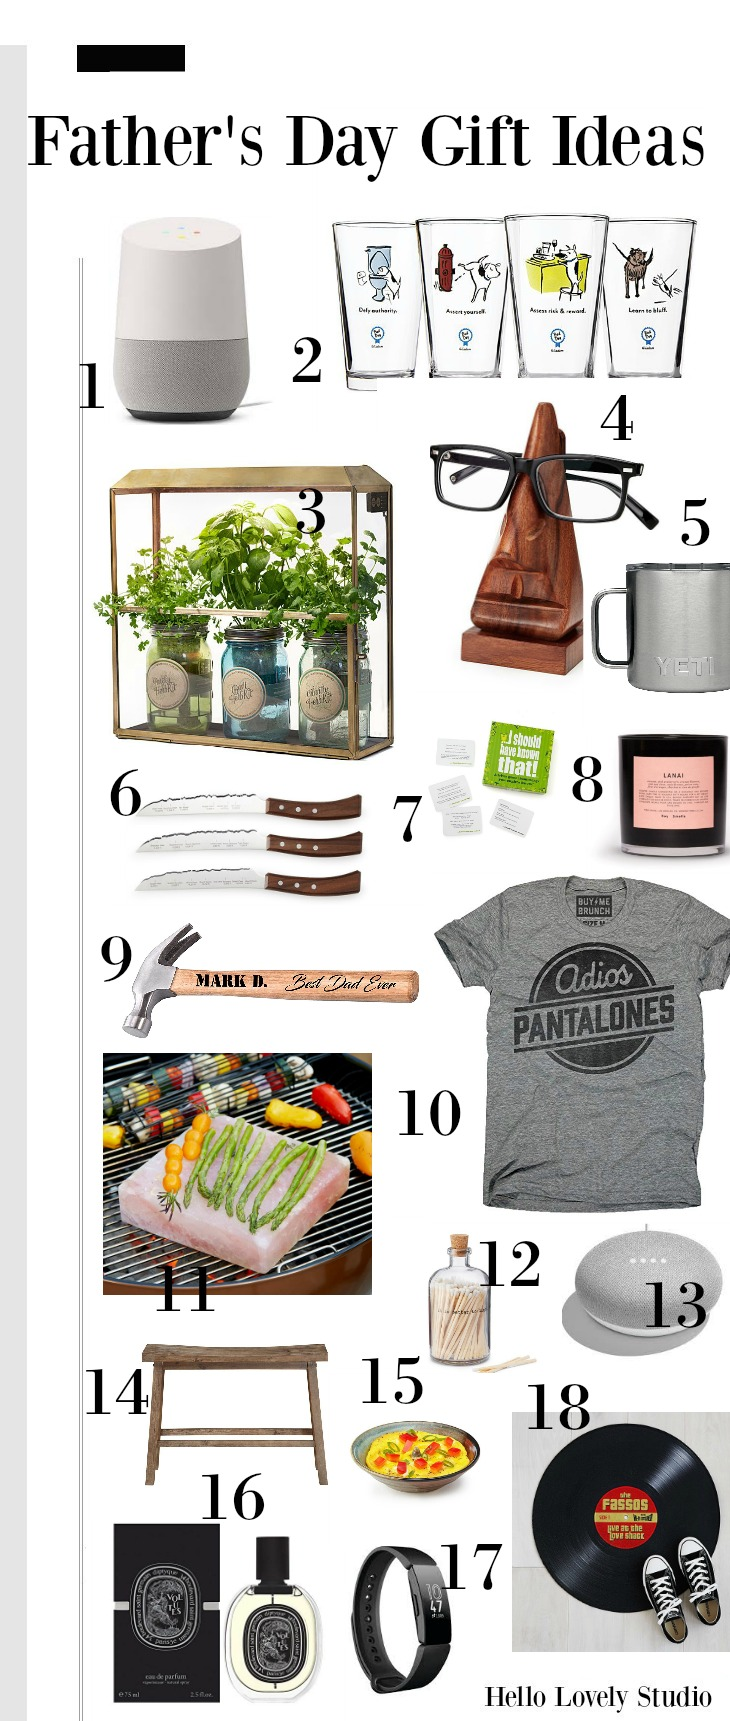 Father's Day Gift Ideas Hello Lovely Studio.